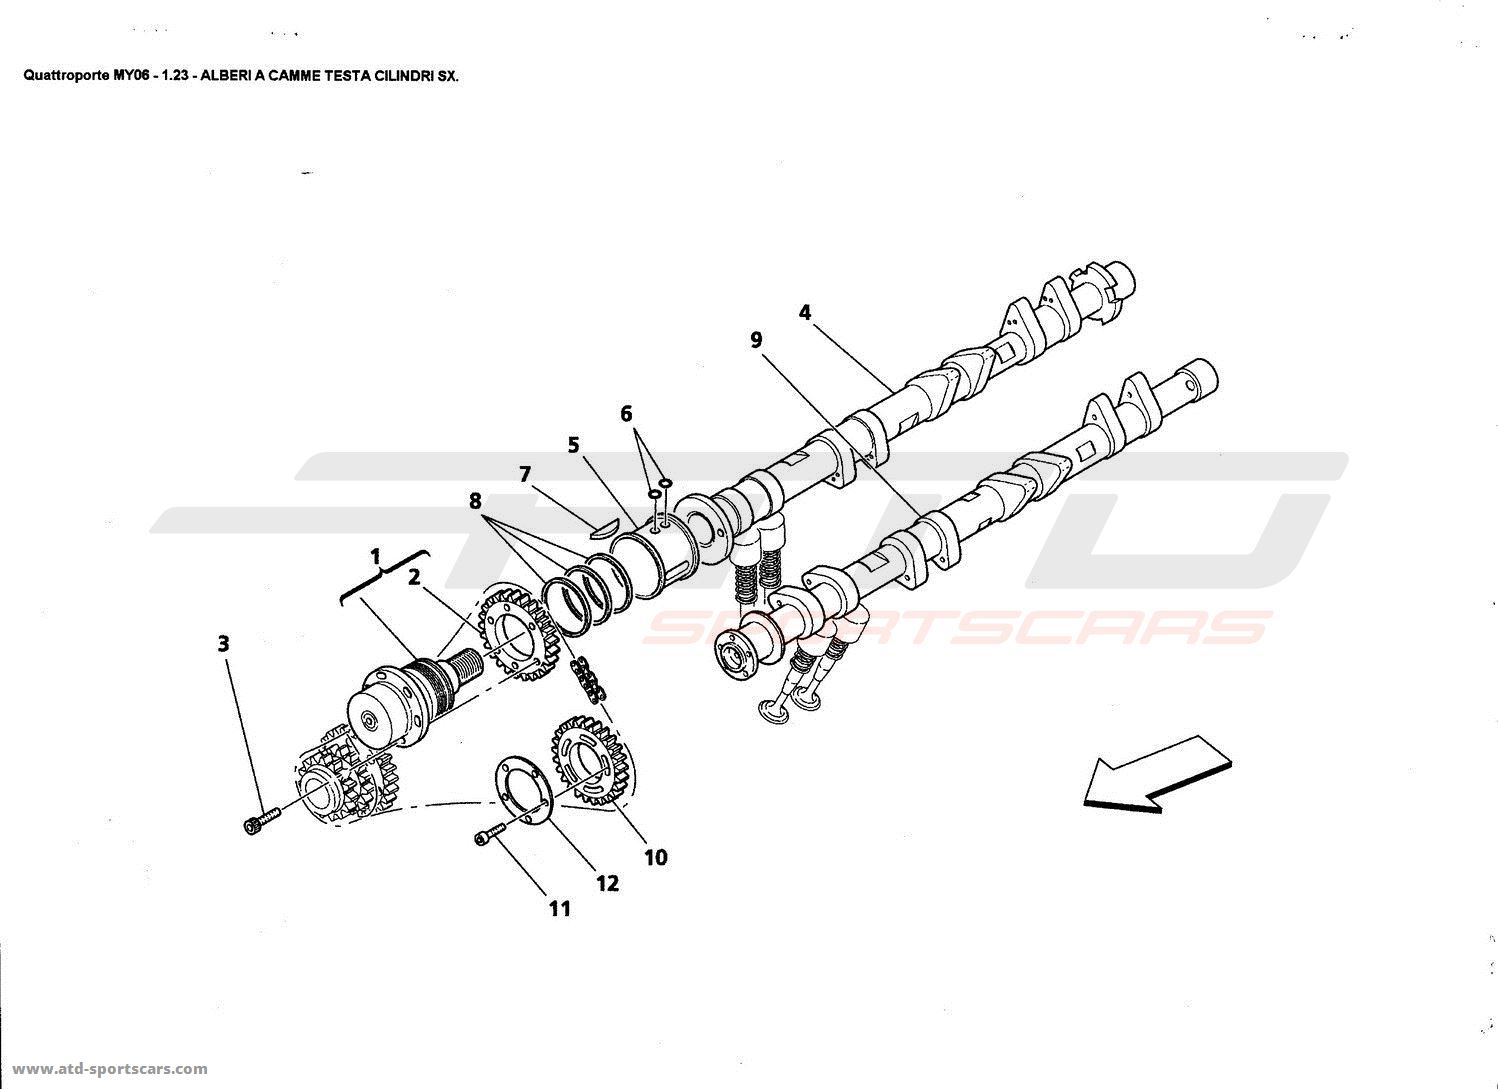 2010 Ford Focus Interior Fuse Box likewise odicis also Wiring Diagram Toyota Echo 2004 in addition Nissan Maxima Knock Sensor Wiring Harness also Chevy 3 Sd Manual Transmission Diagram. on ford focus sd sensor location